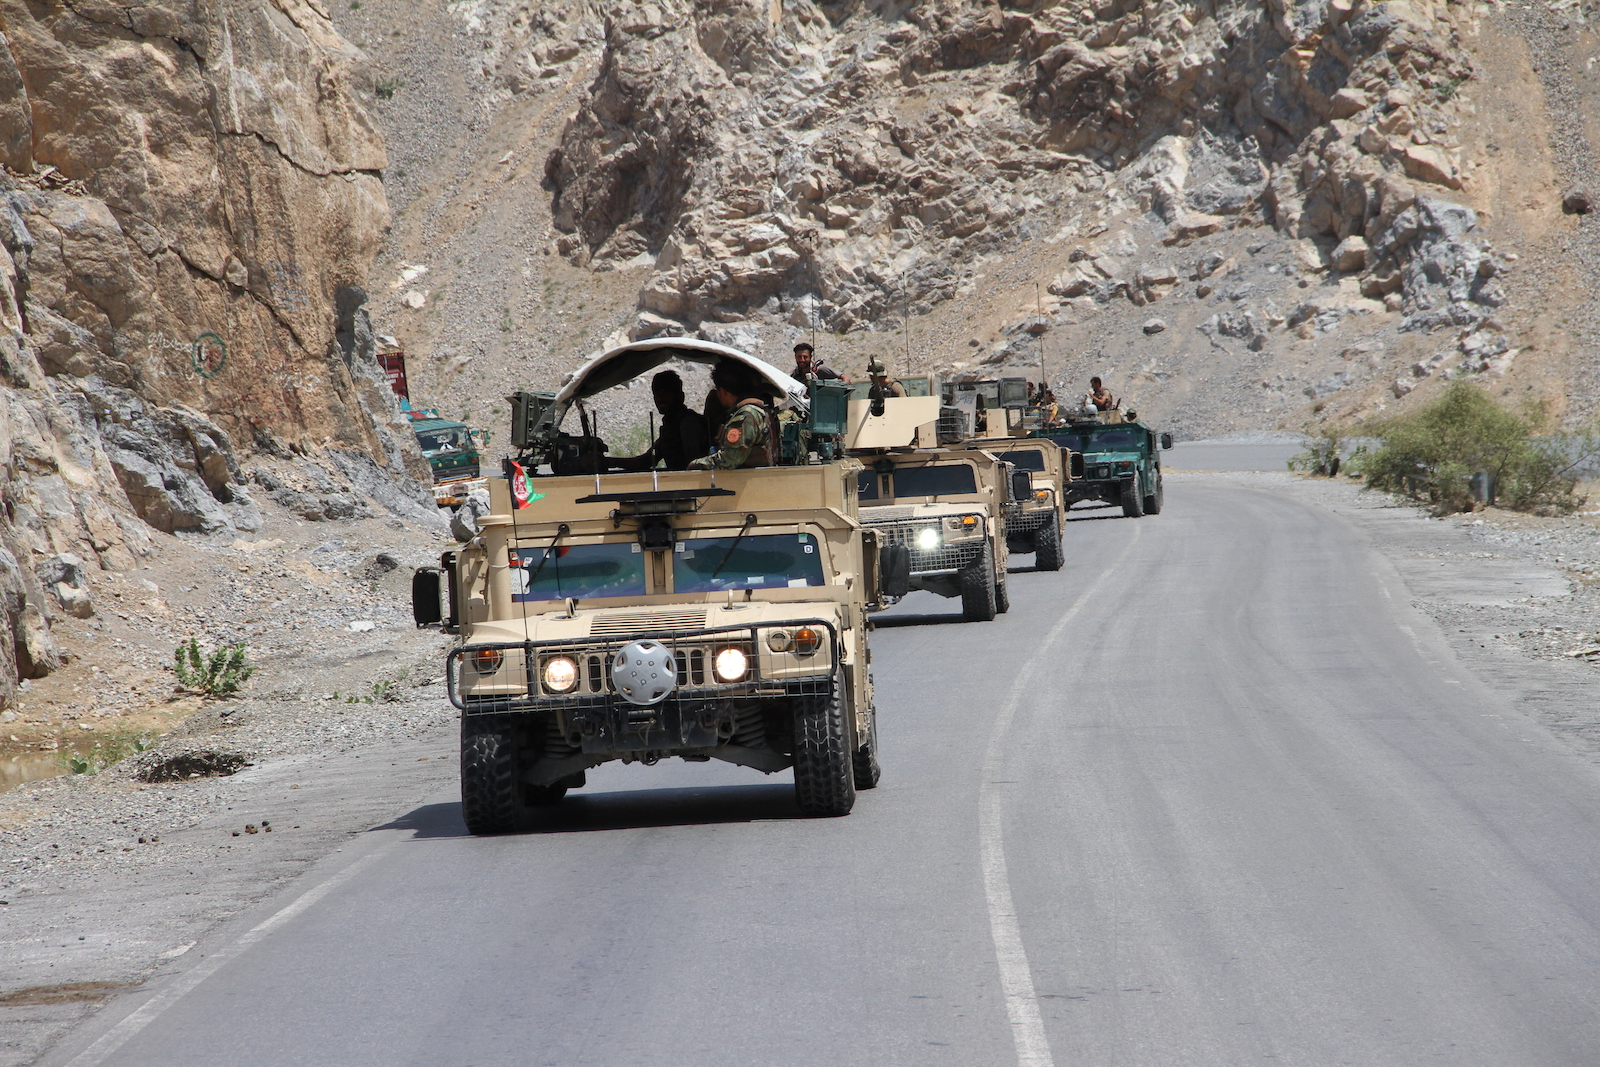 Afghan security forces deployed and start operations against Taliban around Torkham border point between Afghanistan and Pakistan in Nangarhar province, Afghanistan on July 23, 2021. Photo: AFP via Anadolu Agency / Stringer